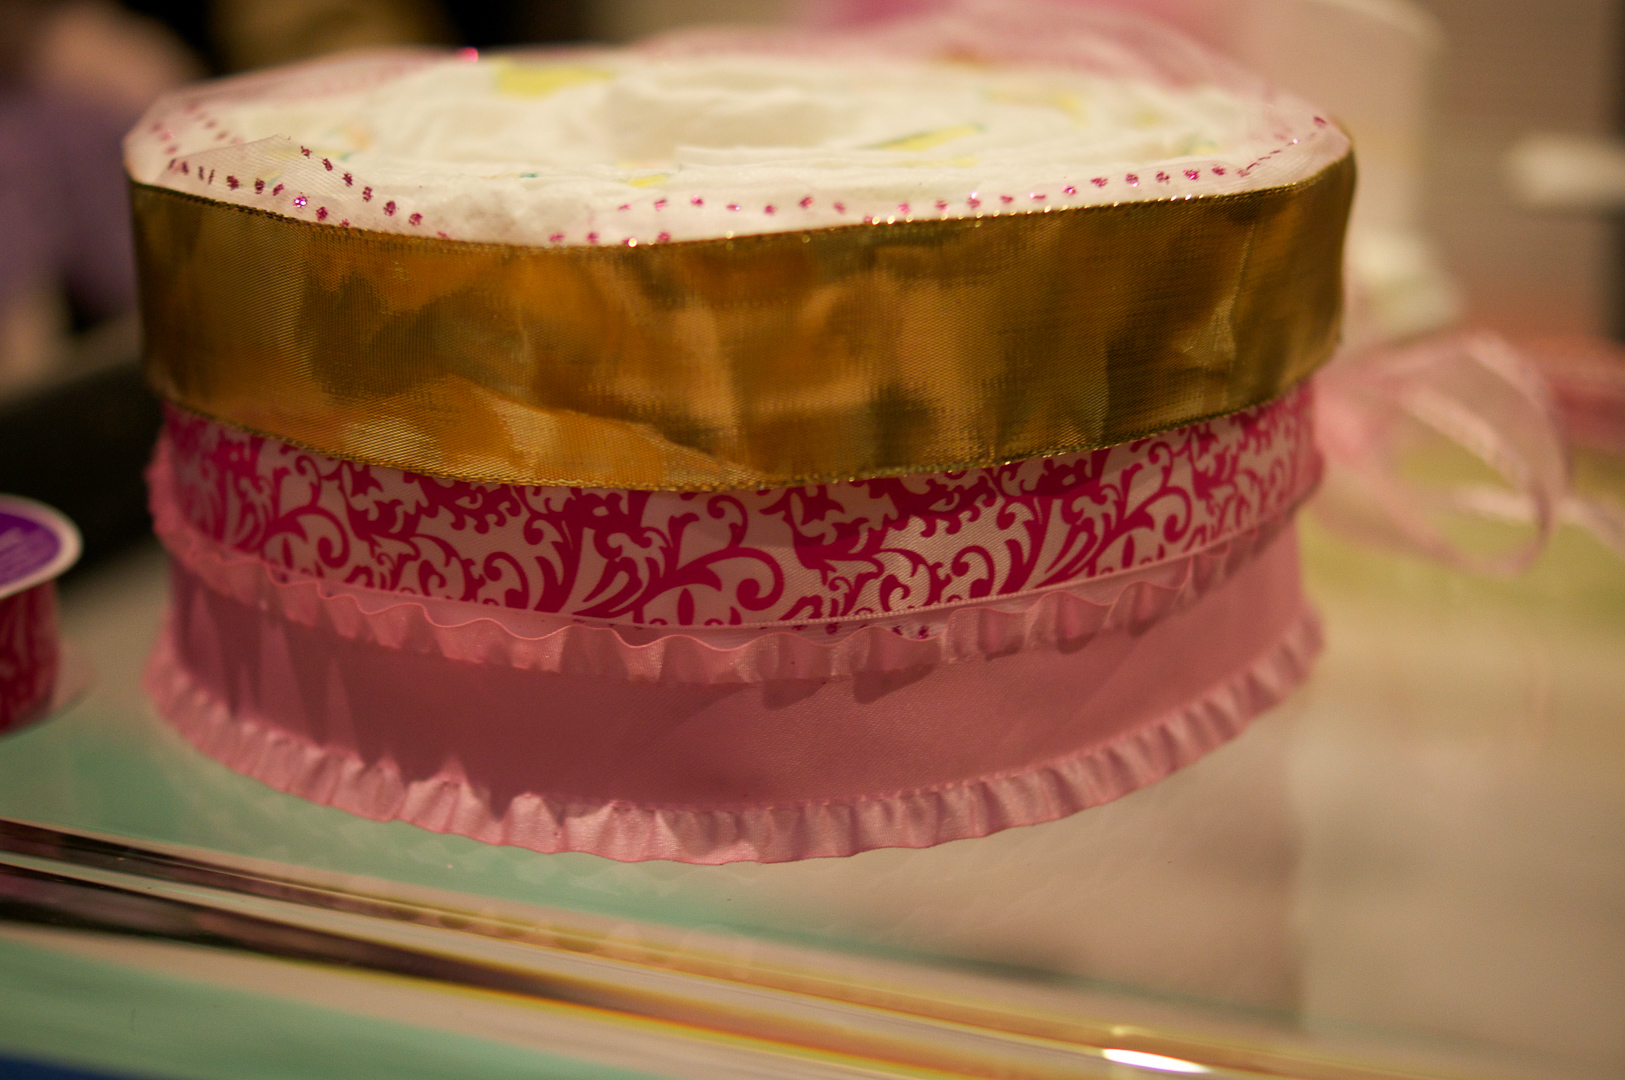 It's up to you how you want to decorate the cake with ribbons. I chose the pink double ruffled satin ribbon for the bottom, the pink satin damask for the middle, and a wide gold wired ribbon for the top. Designs are all up to you!